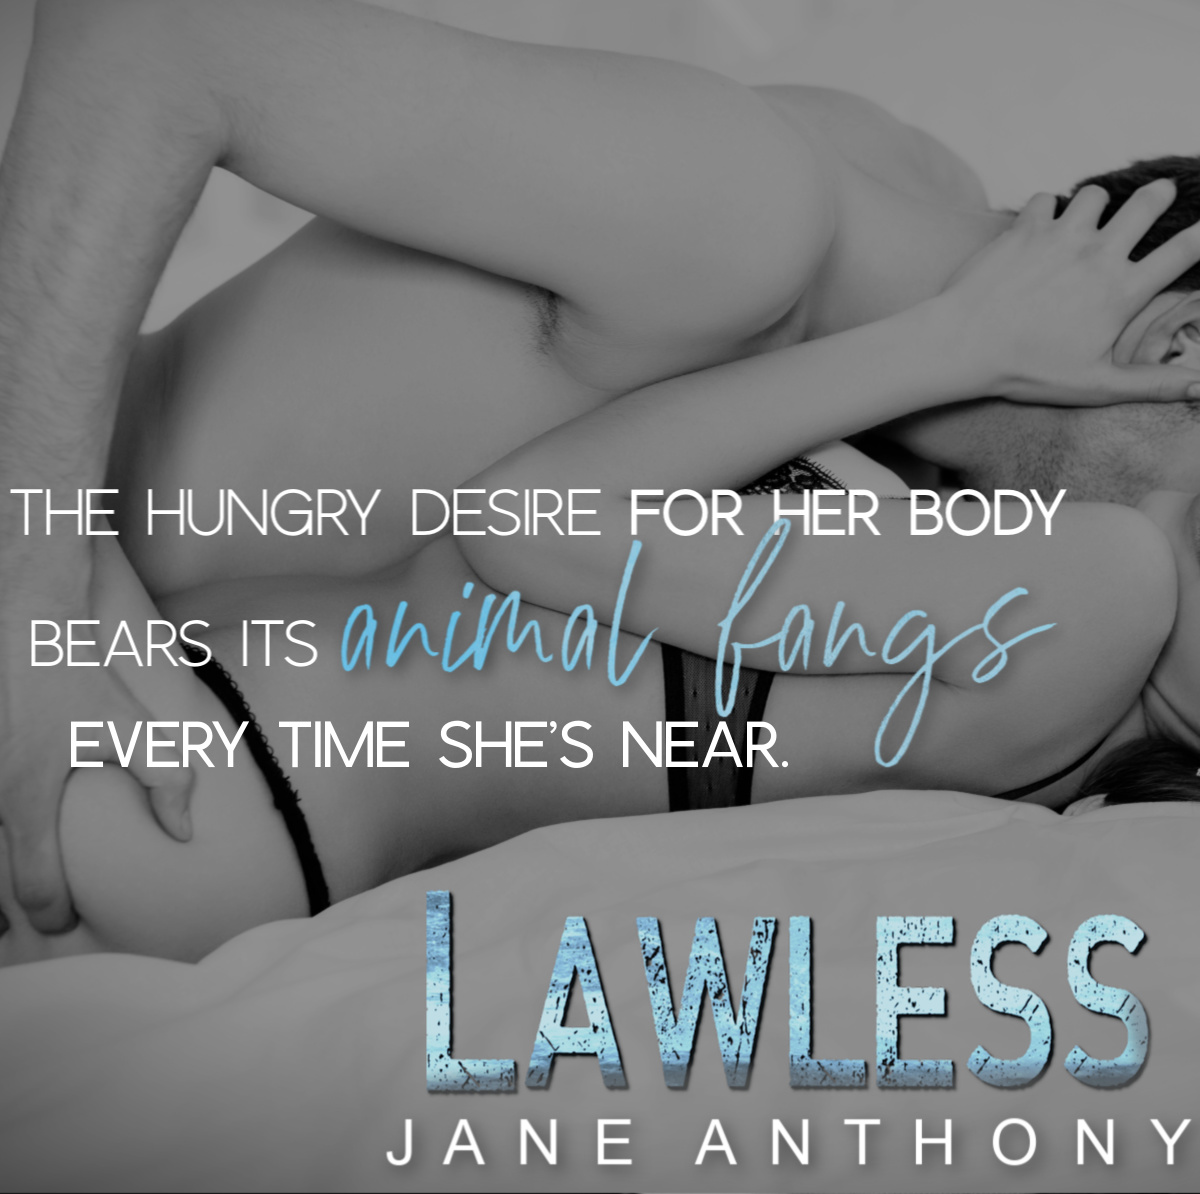 LAWLESS-3 (1).jpg